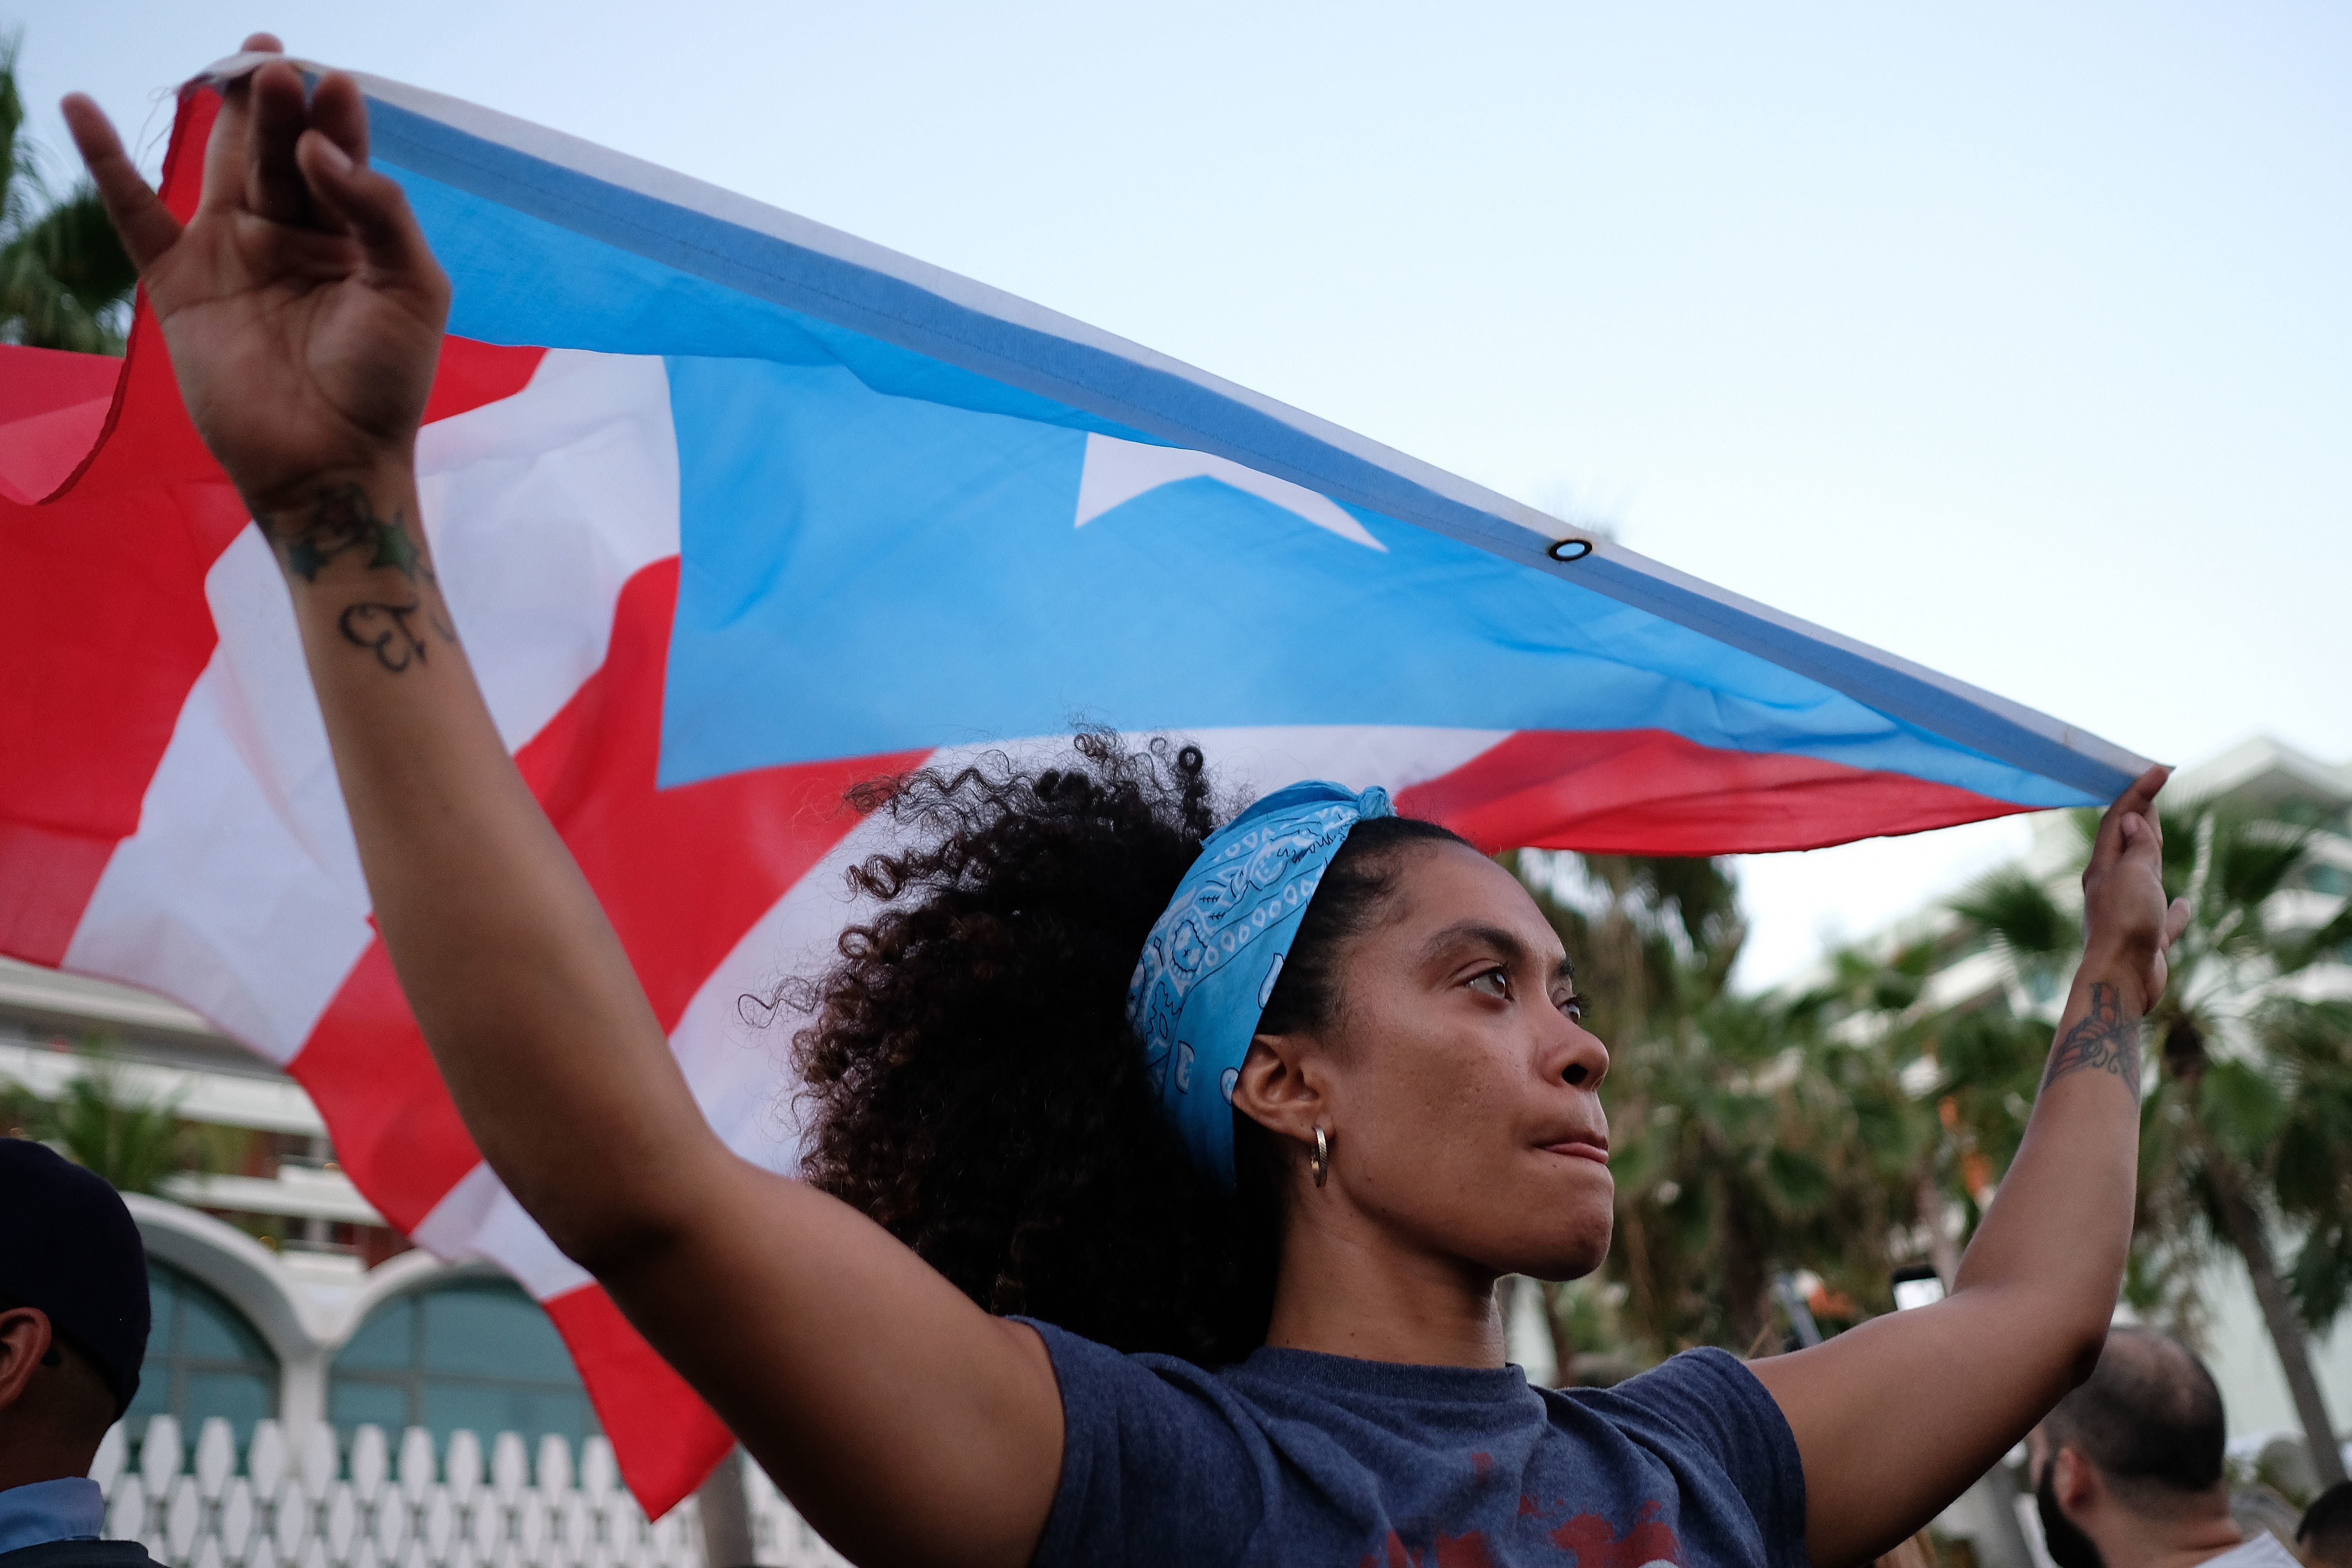 People march to protest pension cuts, school closures and slow hurricane recovery efforts in the El Condado tourist zone in San Juan, Puerto Rico, Tuesday, May 2, 2018. (Photo by Ricardo ARDUENGO / AFP)        (Photo credit should read RICARDO ARDUENGO/AFP/Getty Images)